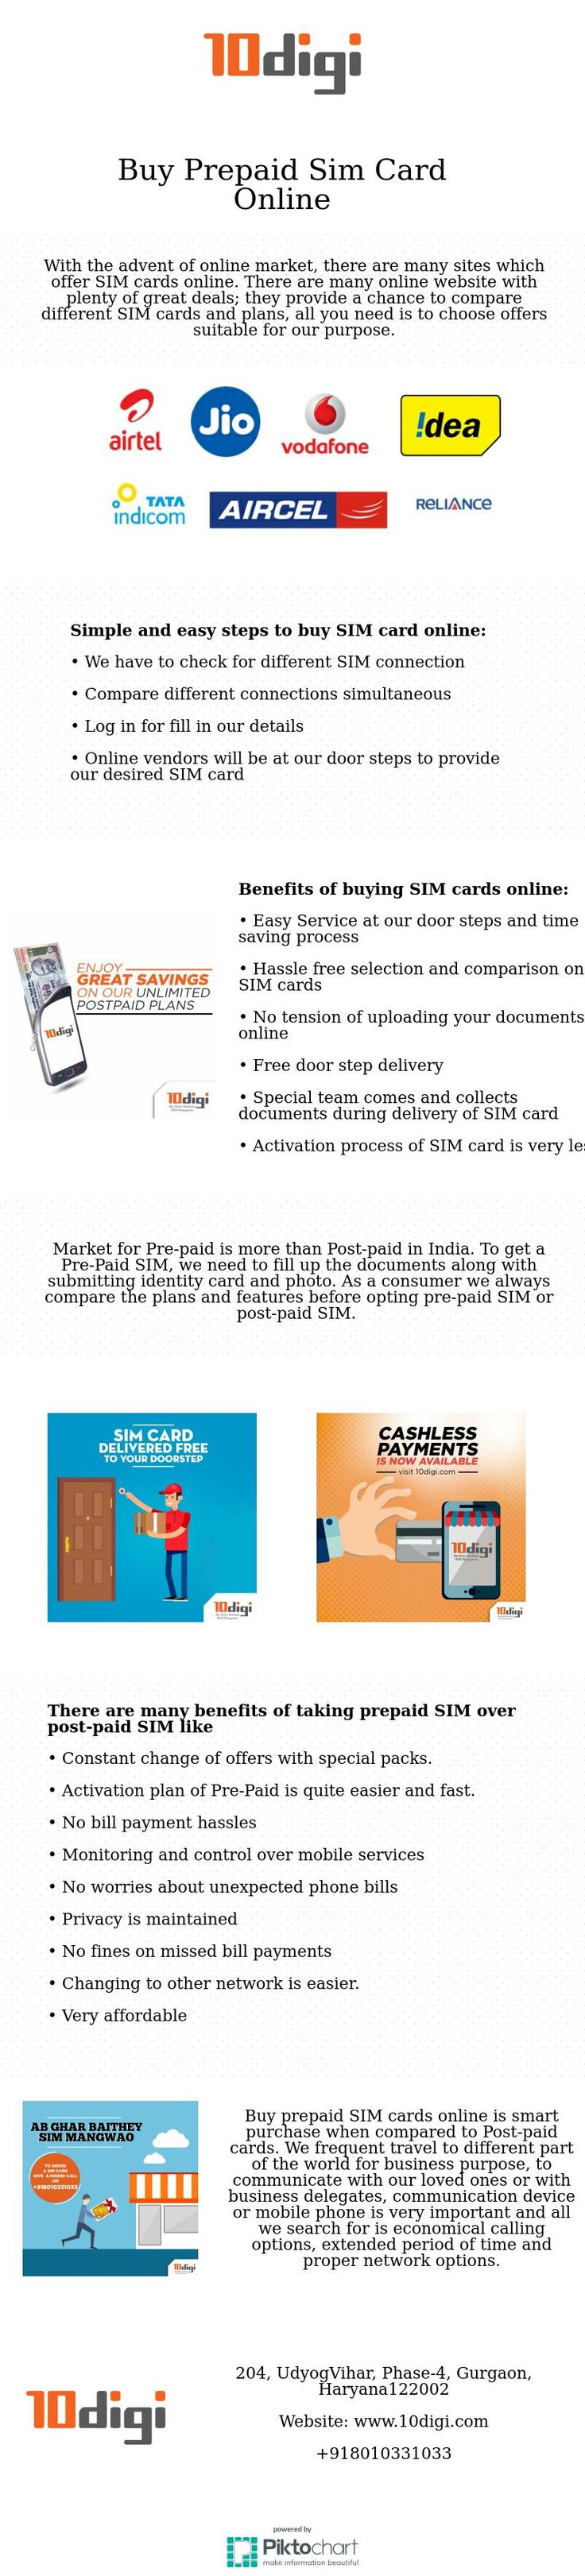 10 digi is a leading online buying website for prepaid SIM connection, buy post-paid SIM card online, data card, dongle, mobile number portability. They provide prepaid connection online, post-paid connection online with comparison and provide free door services.